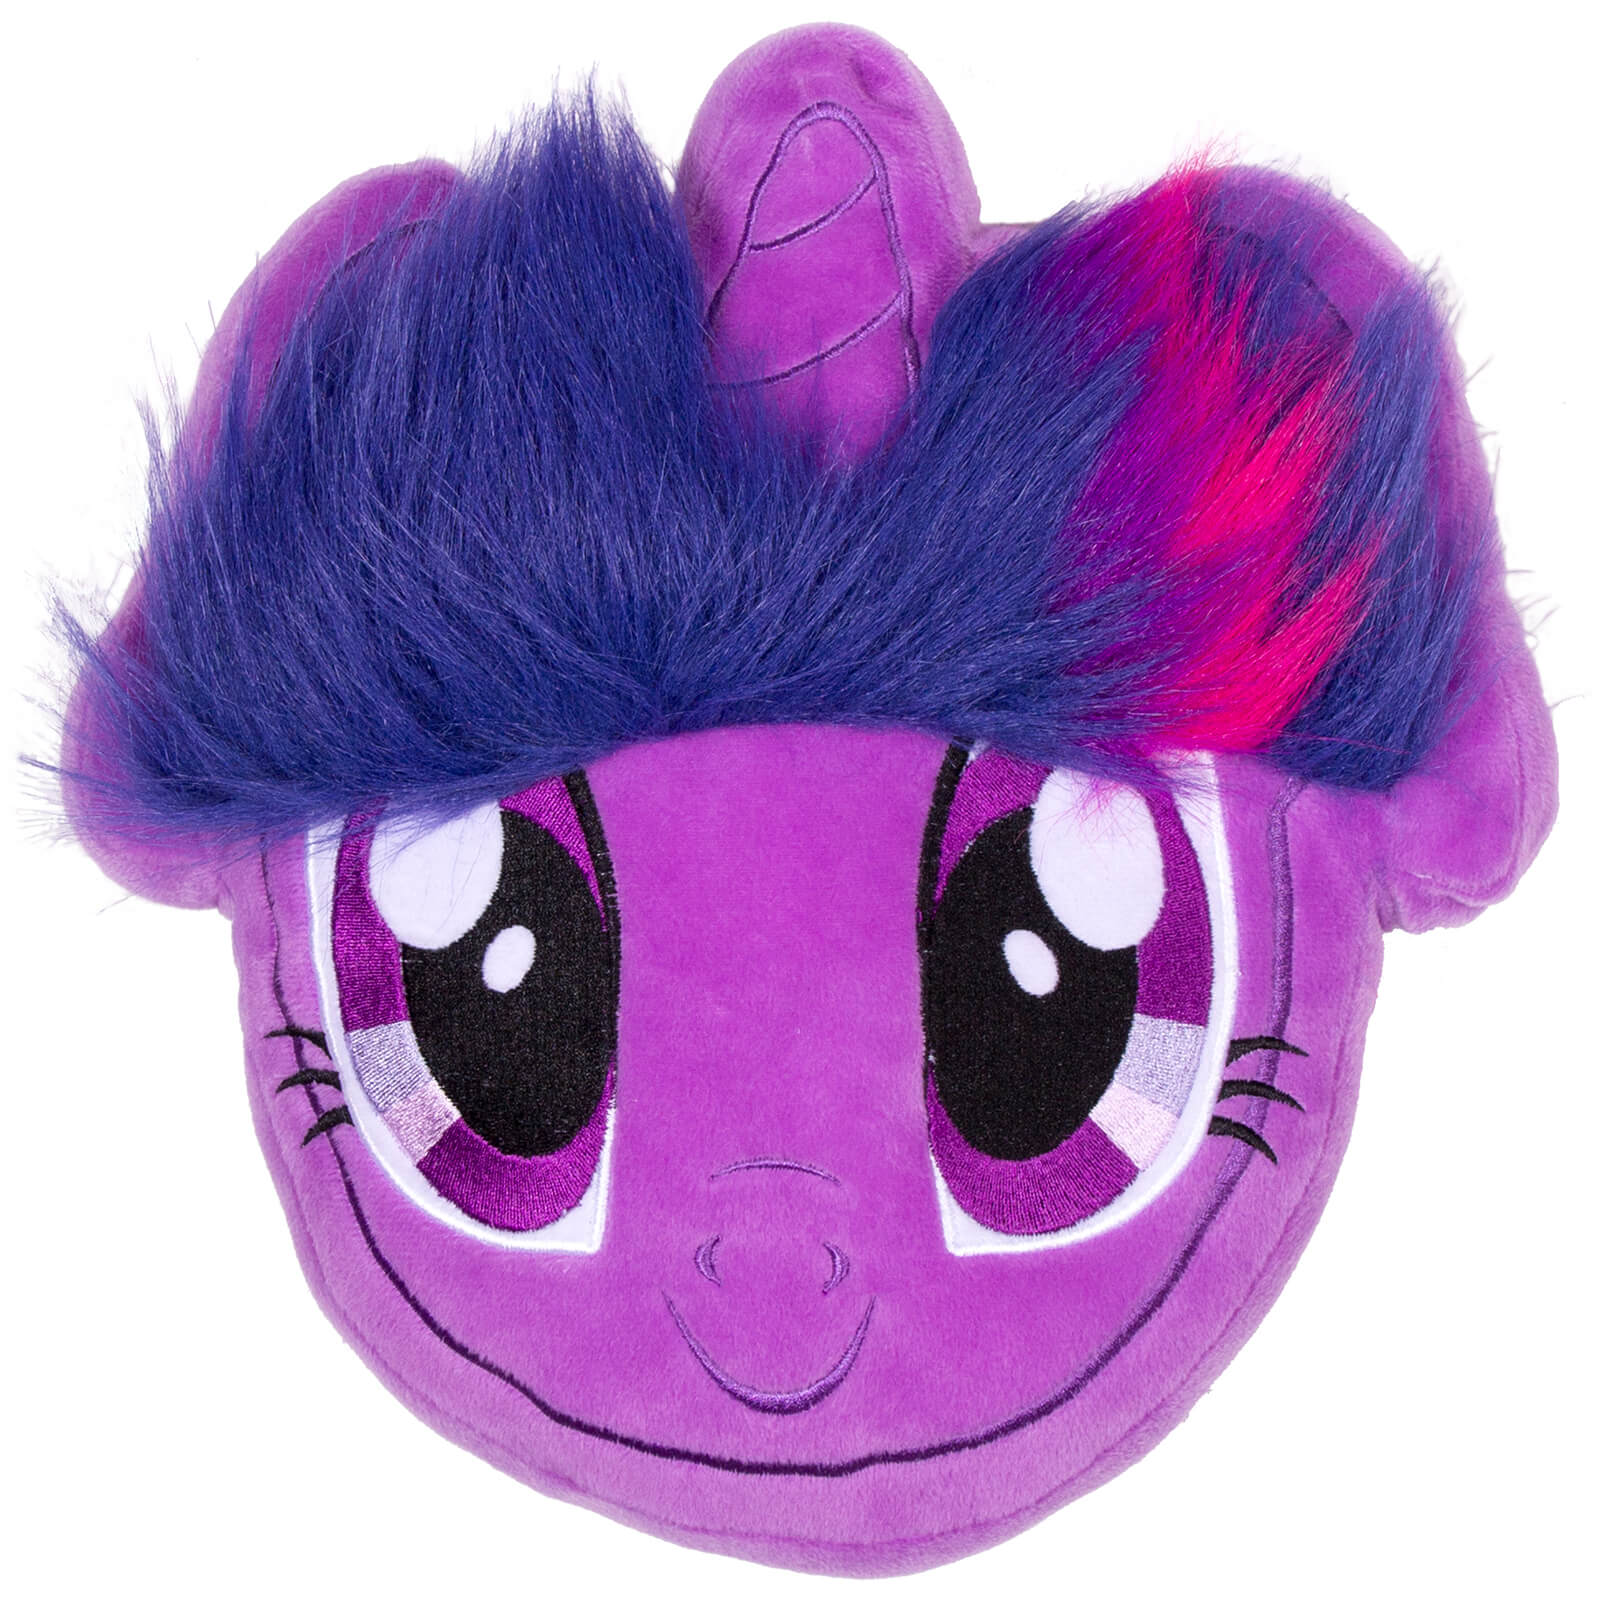 Coussin My Little Pony : Les amies, c